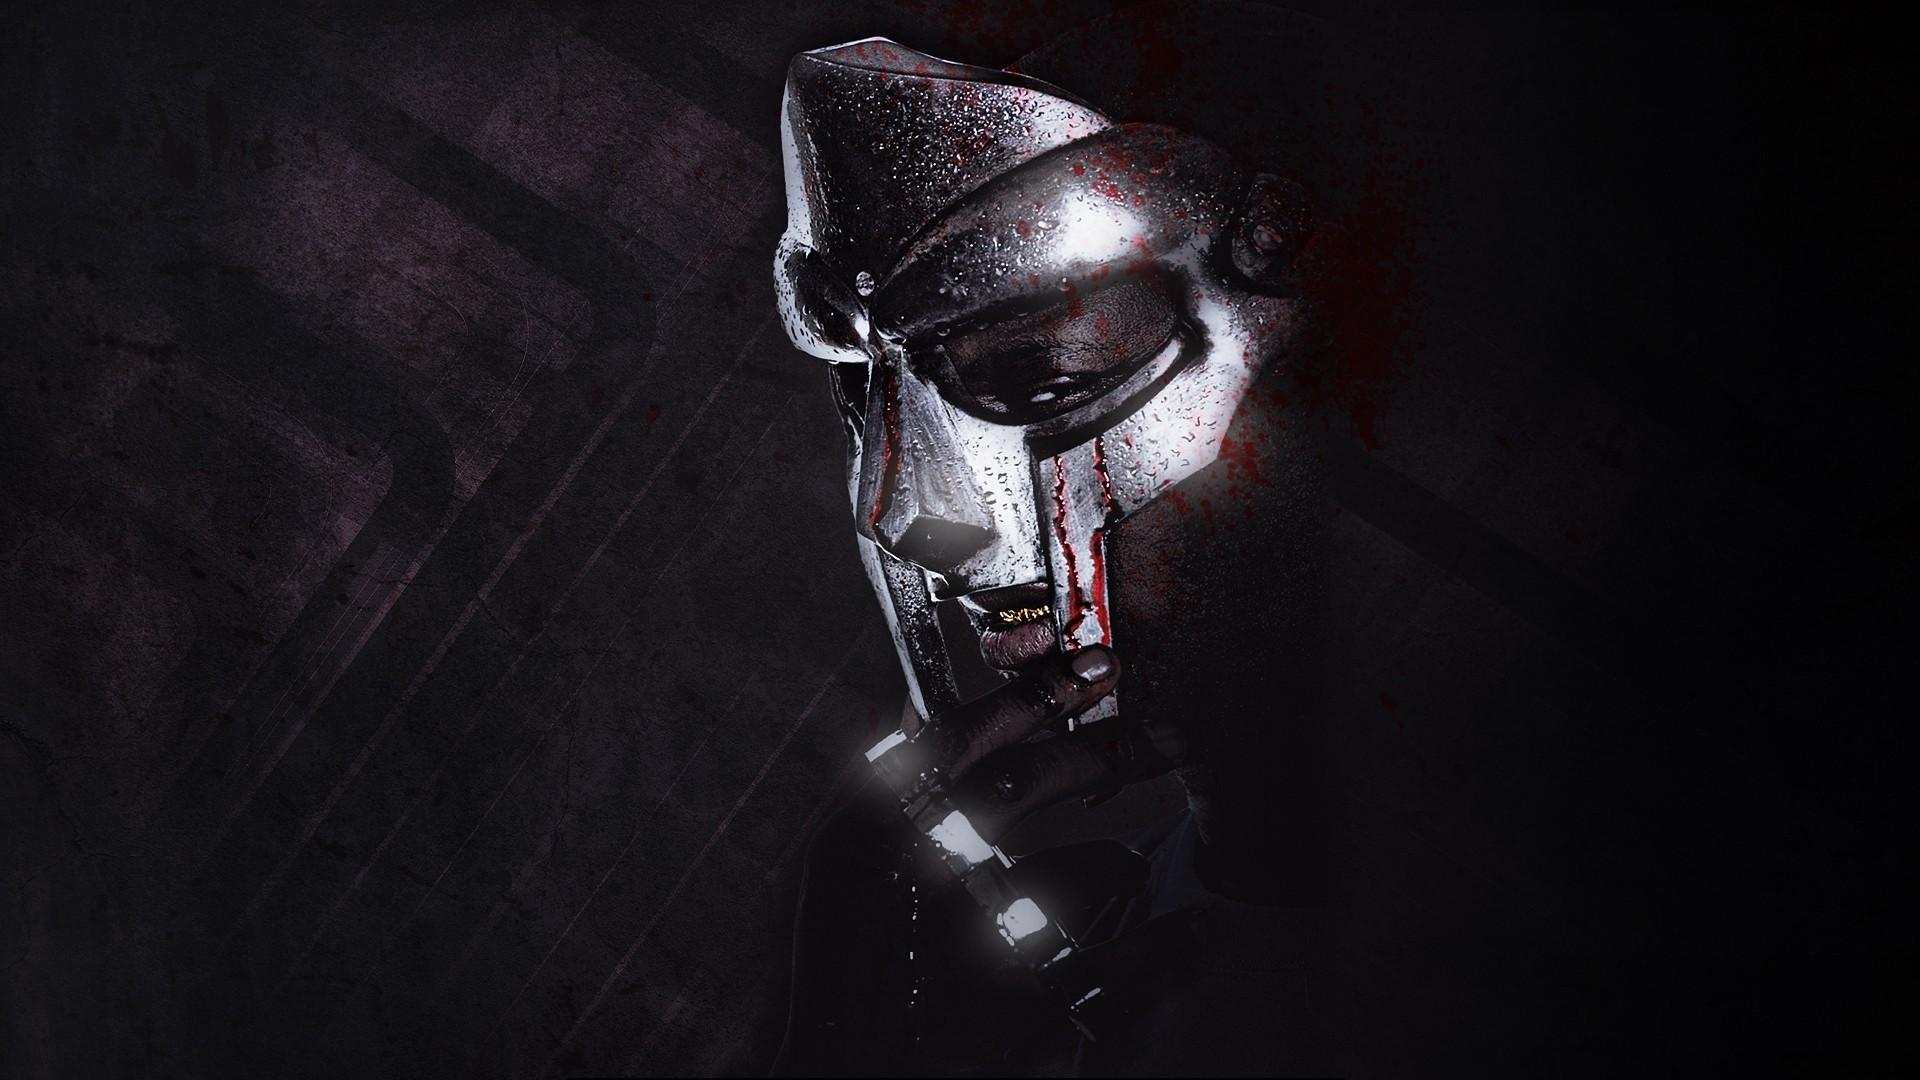 Music mf doom hip hop rap singers wallpaper 25655 1920x1080